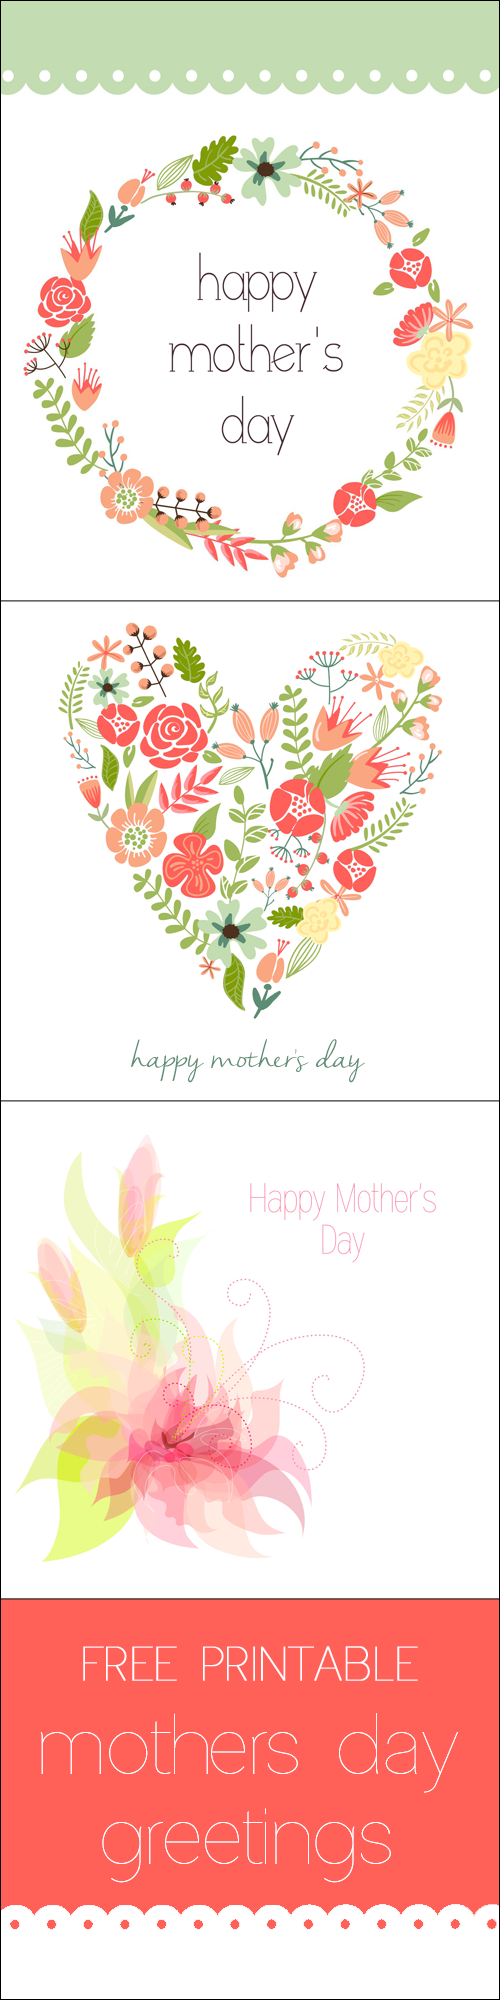 Mothers Day Cards Free Printable Greetings For Your Mom Five Spot